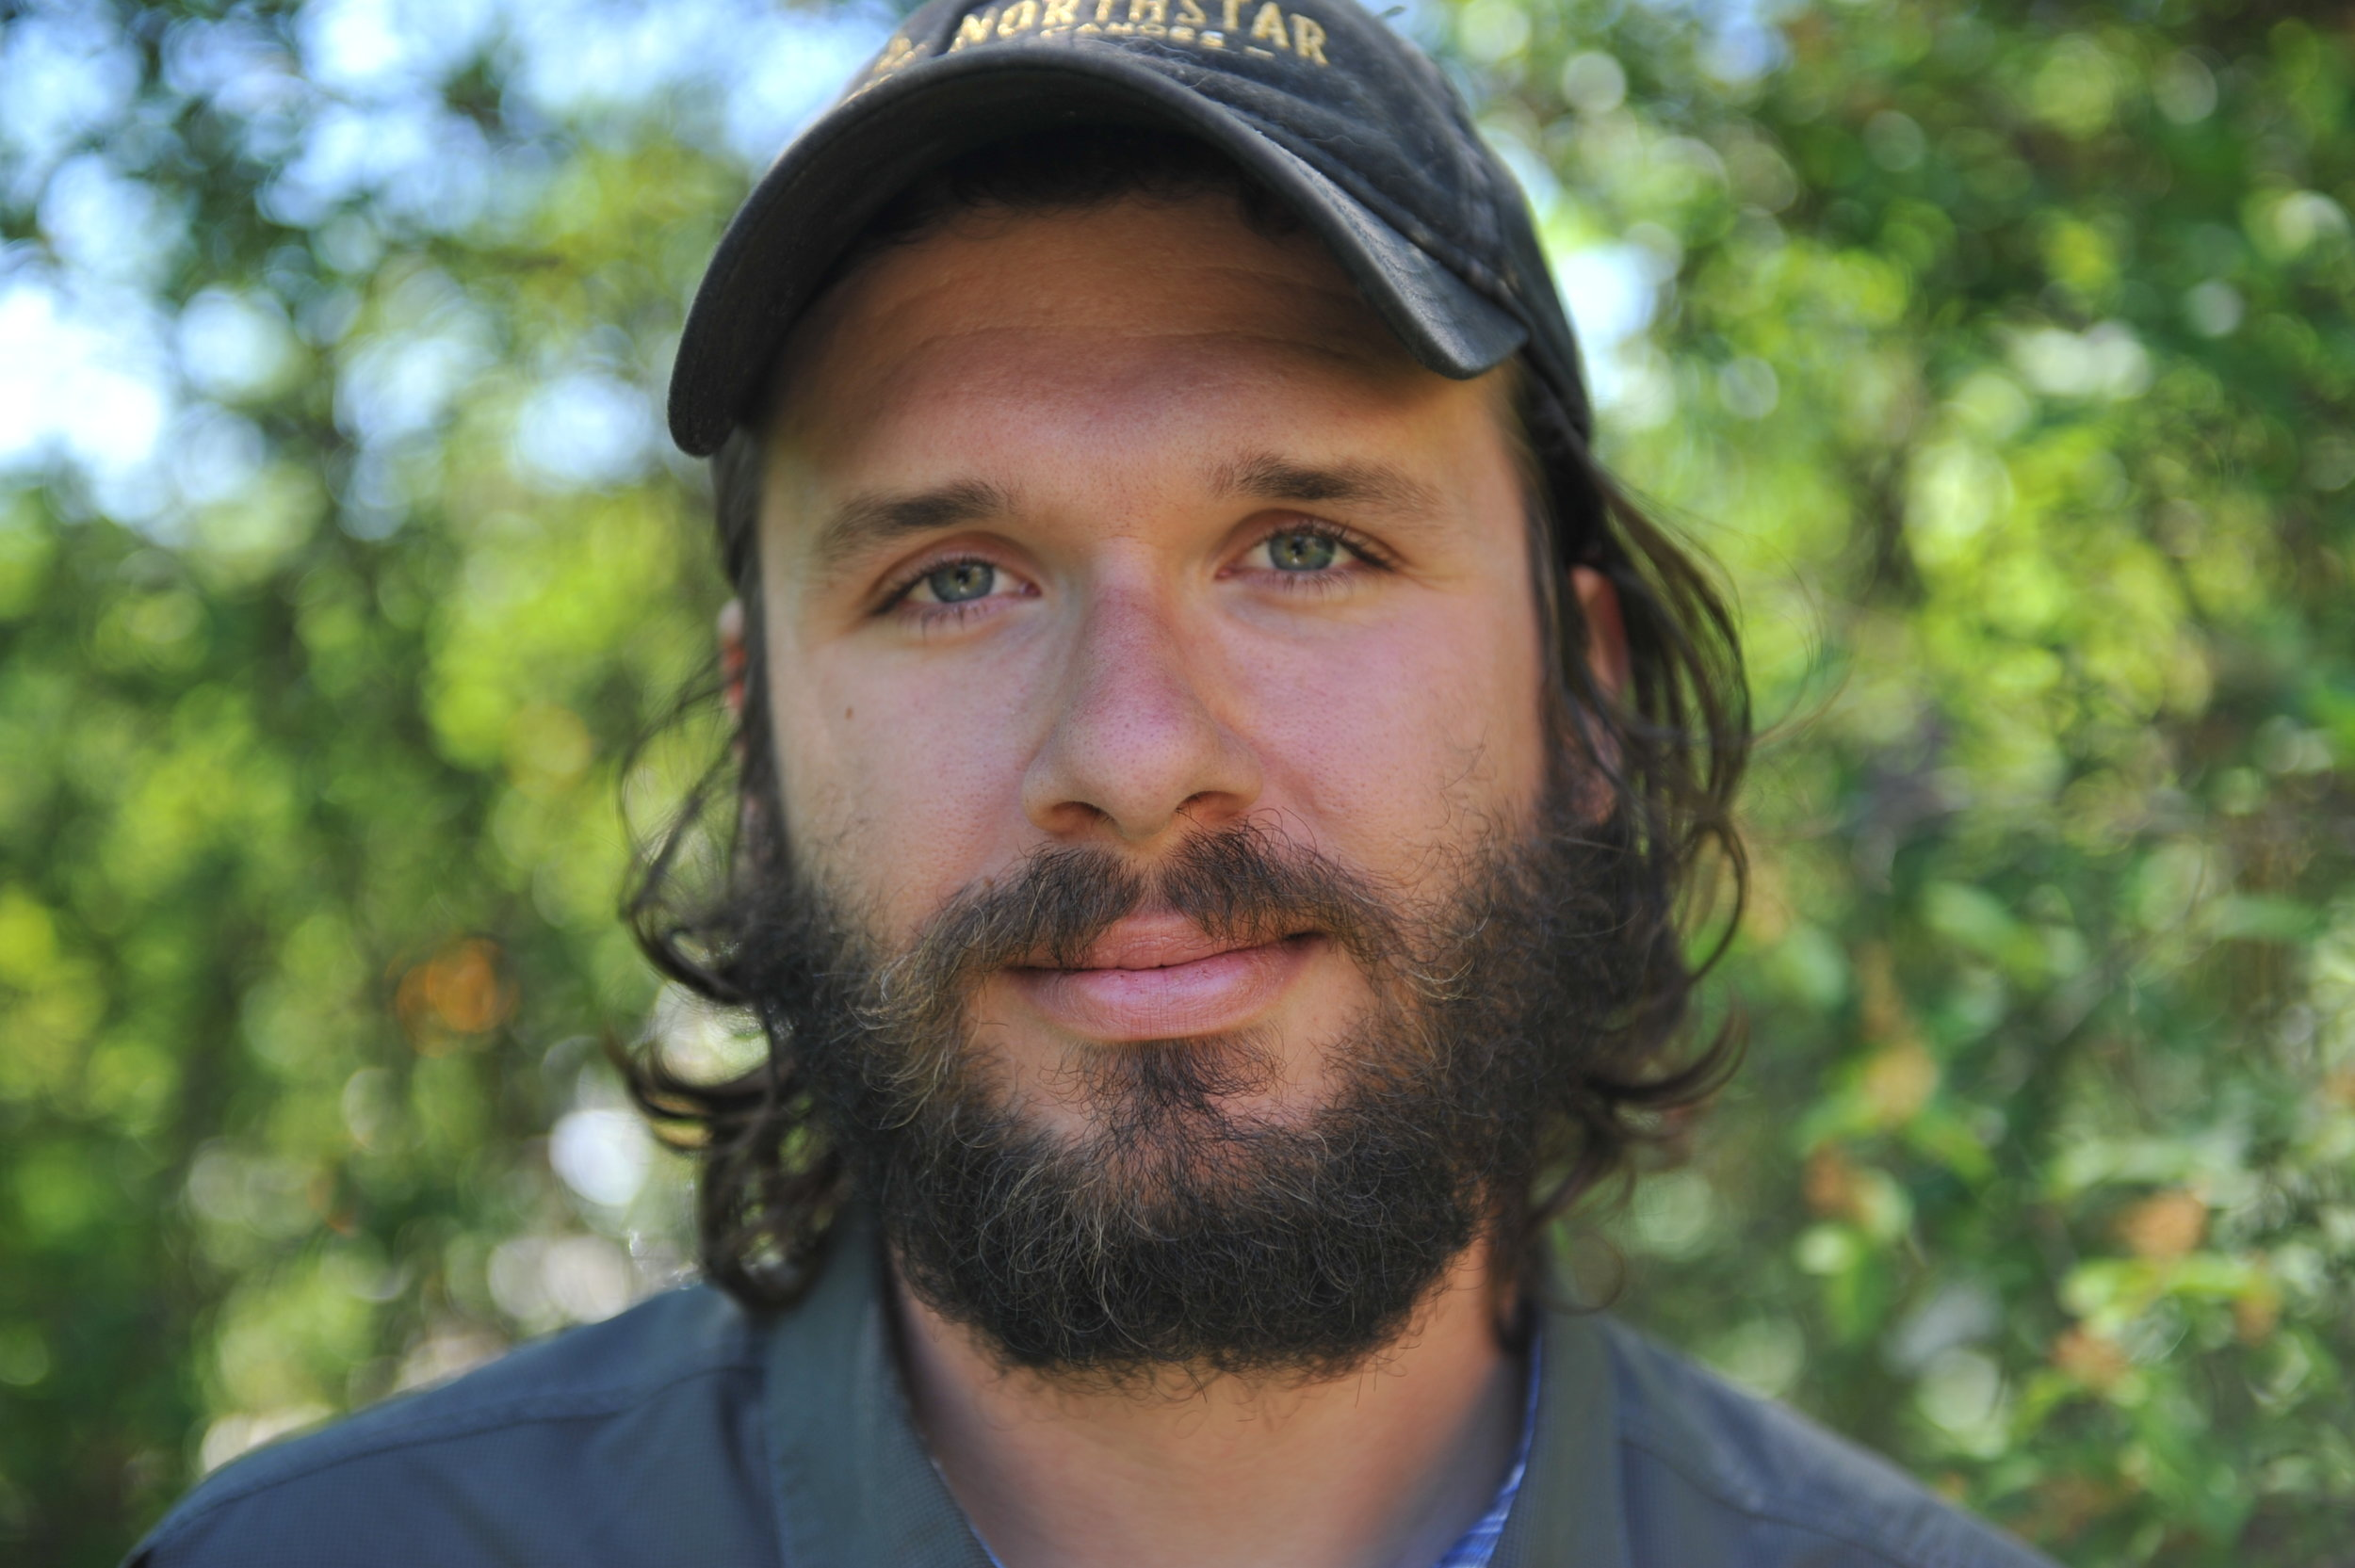 Brad Tallent - Brad will be assigned the task of Expedition Leader. He will be in control of the maps and ultimately when the crew will stop to resupply. Brads goals are to record as much data about the trail as possible, both digital and physical.Co-Owner of Adventureitus